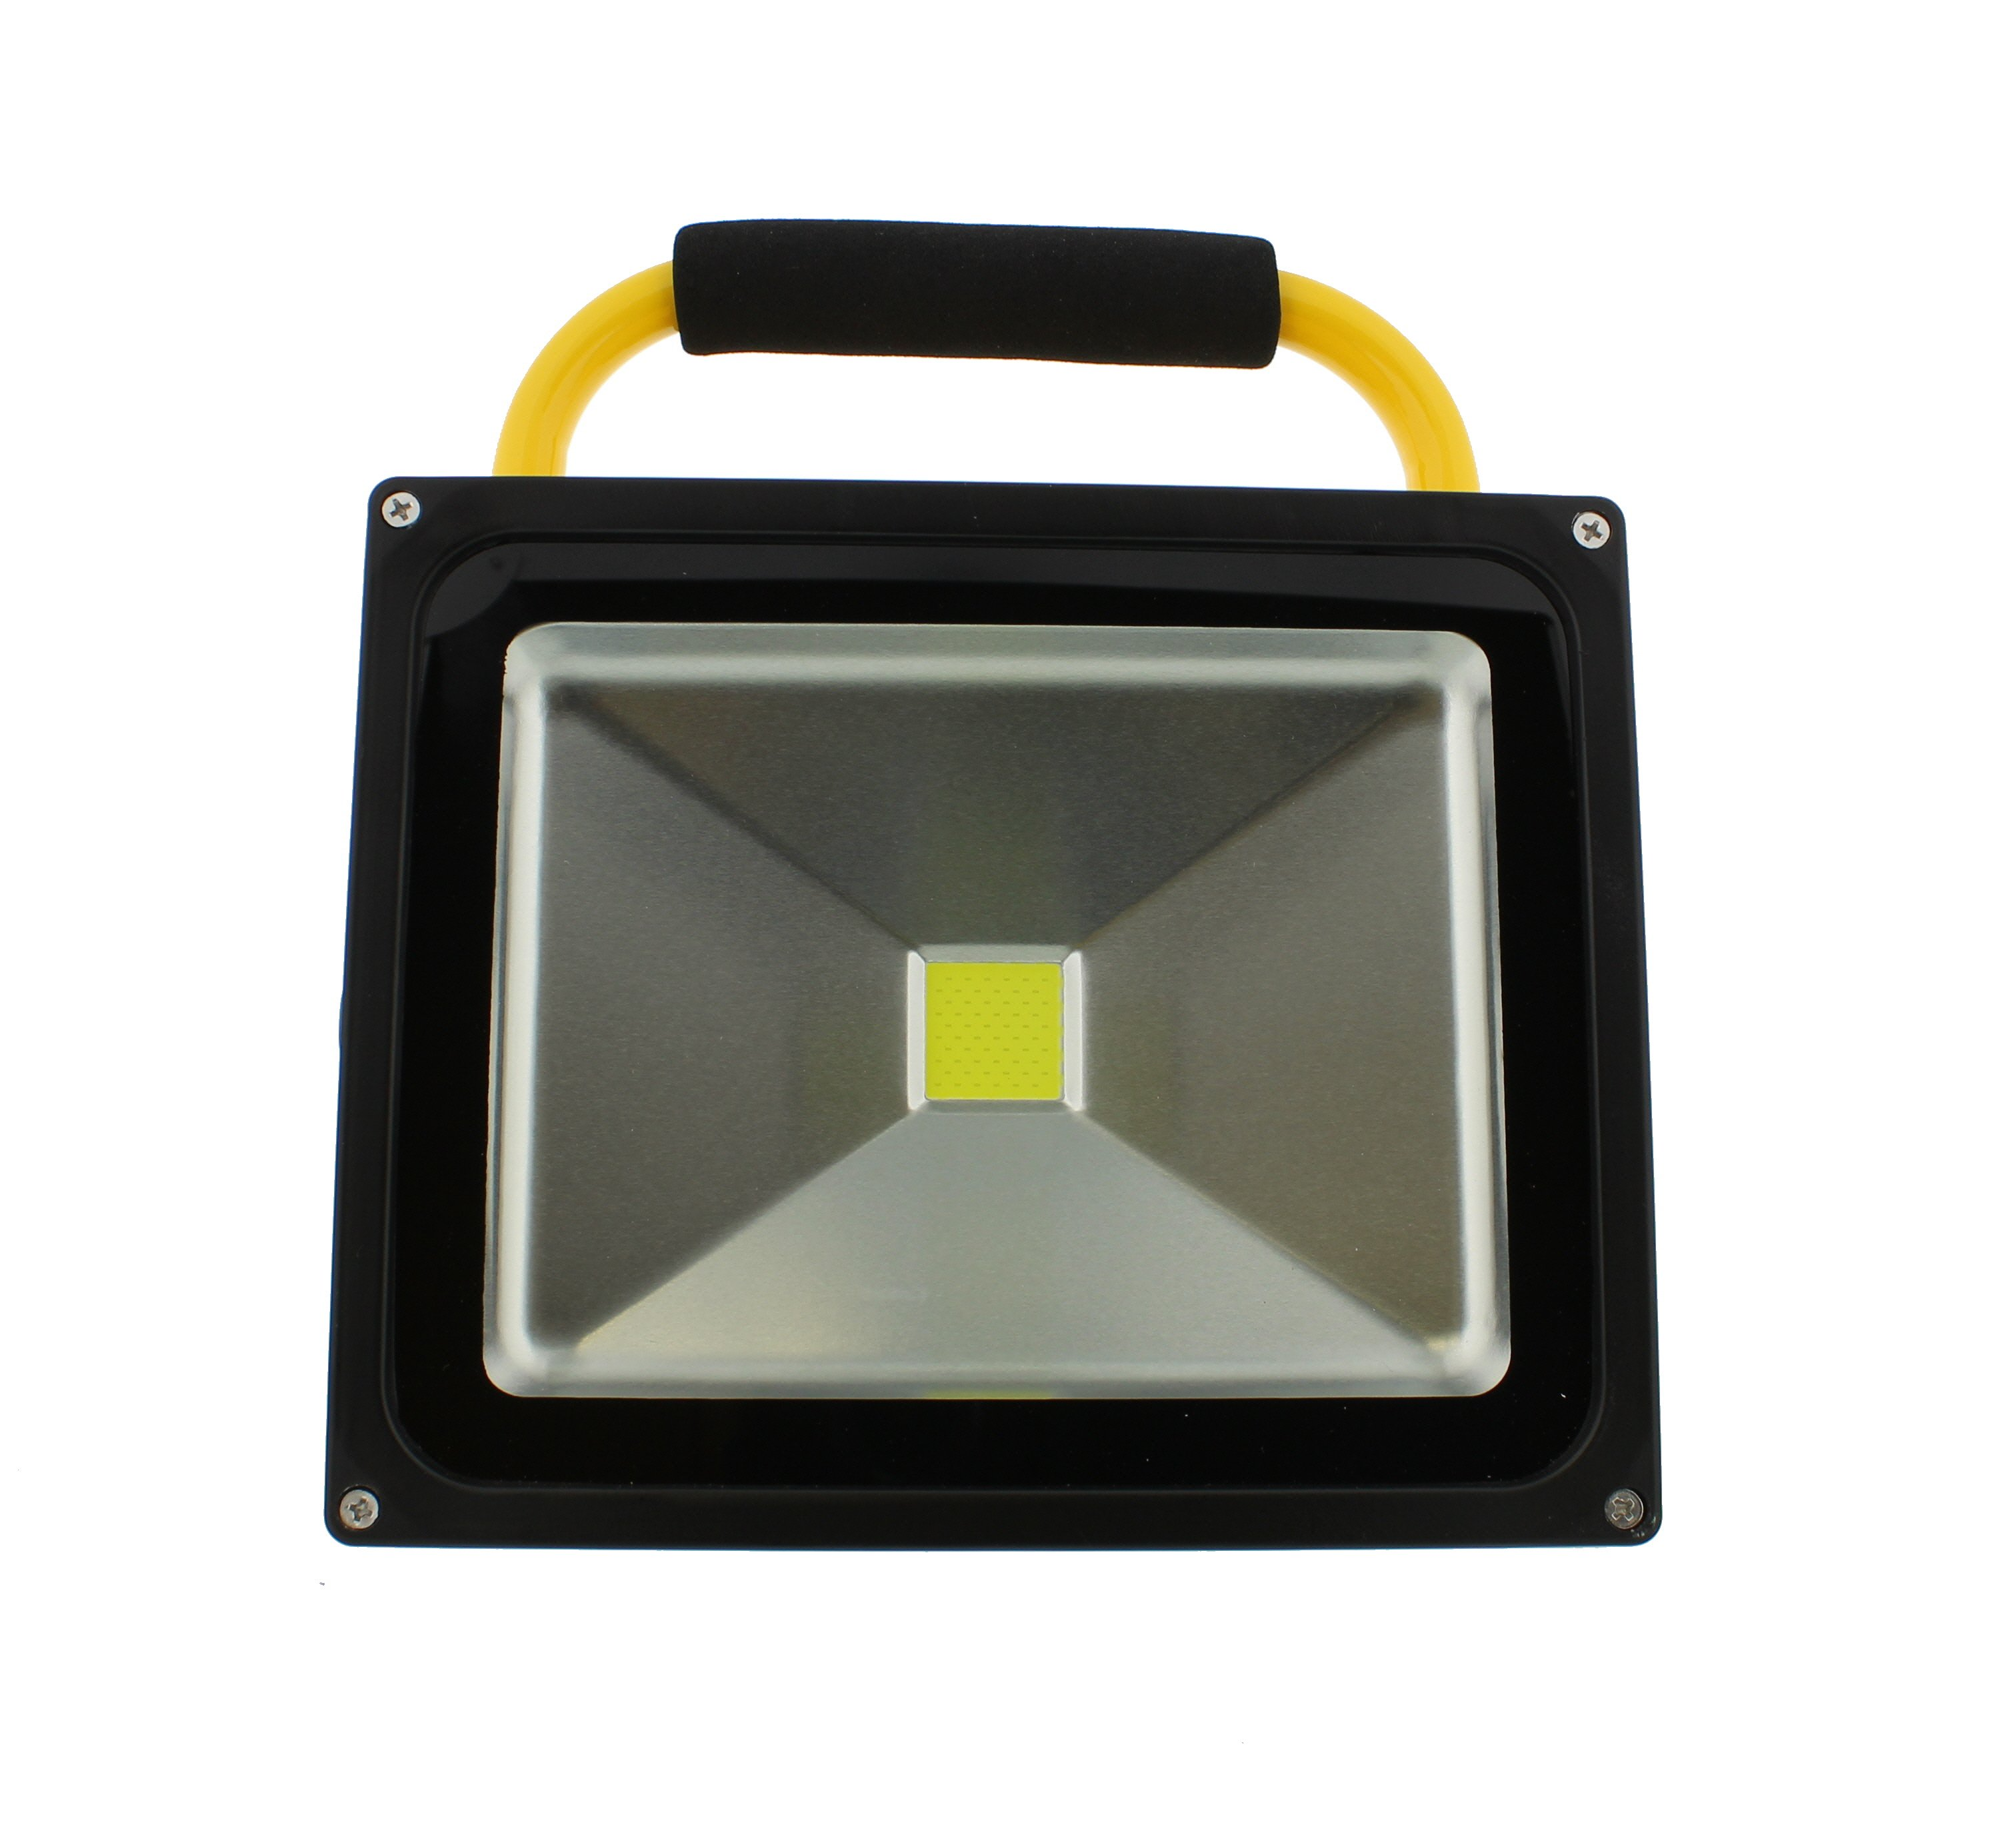 Rechargeable Led Work Light Cordless Portable Flood Light Abn 8279 8286 8293 8309 Parent Rechargeable Work Light Work Lights Led Work Light